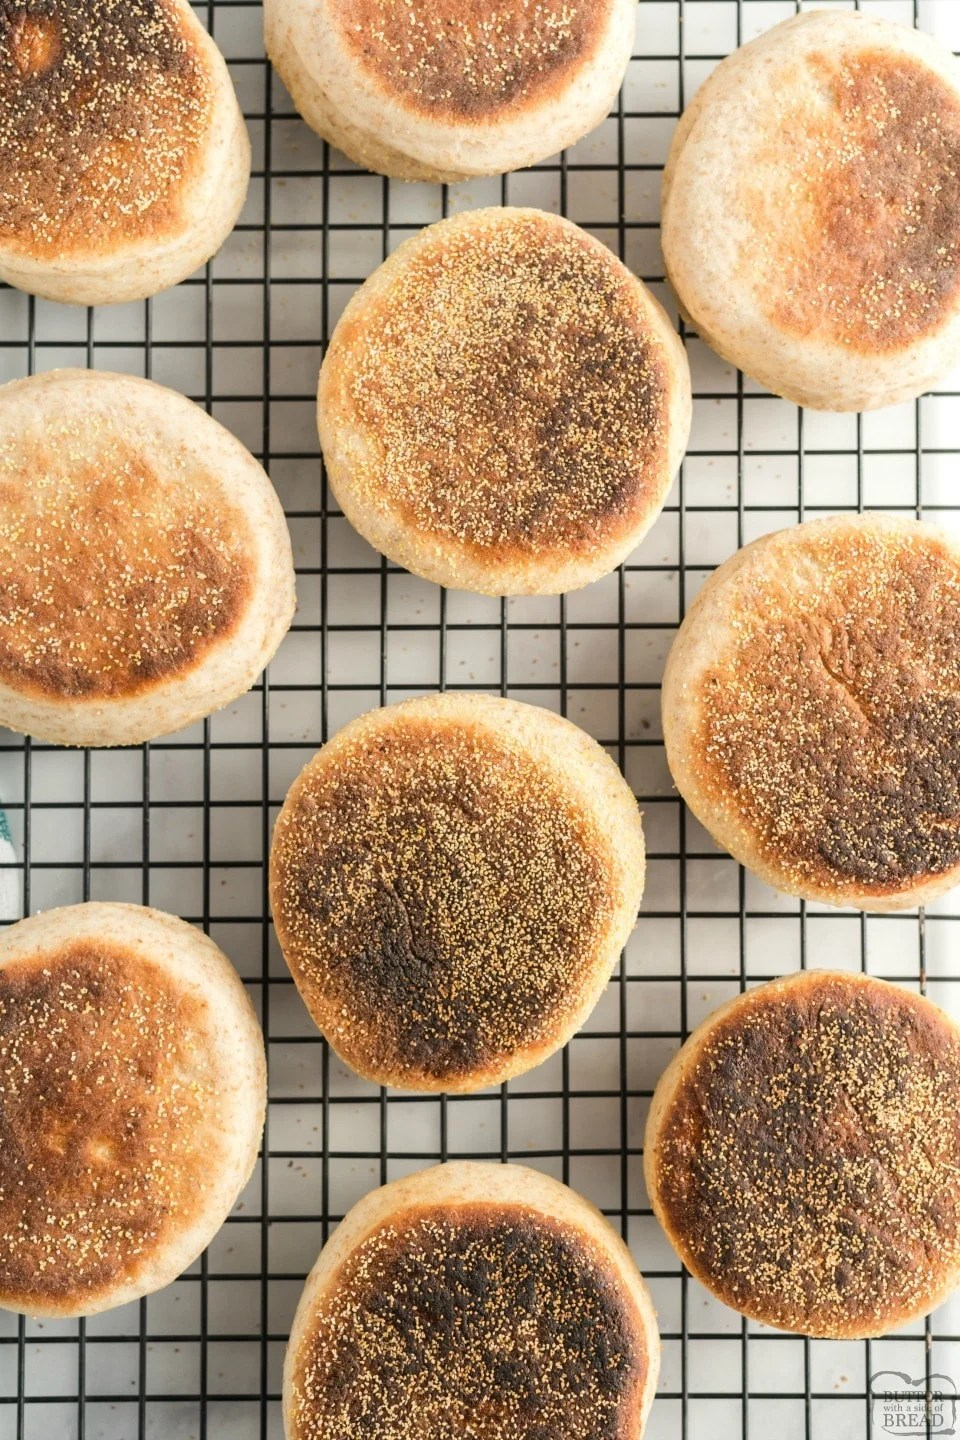 Homemade English Muffins are so simple to make that you'll never want to buy store-bought again. Fluffy English muffin recipe full of nooks and crannies! You'll love everything from the smell to the textures and flavors.